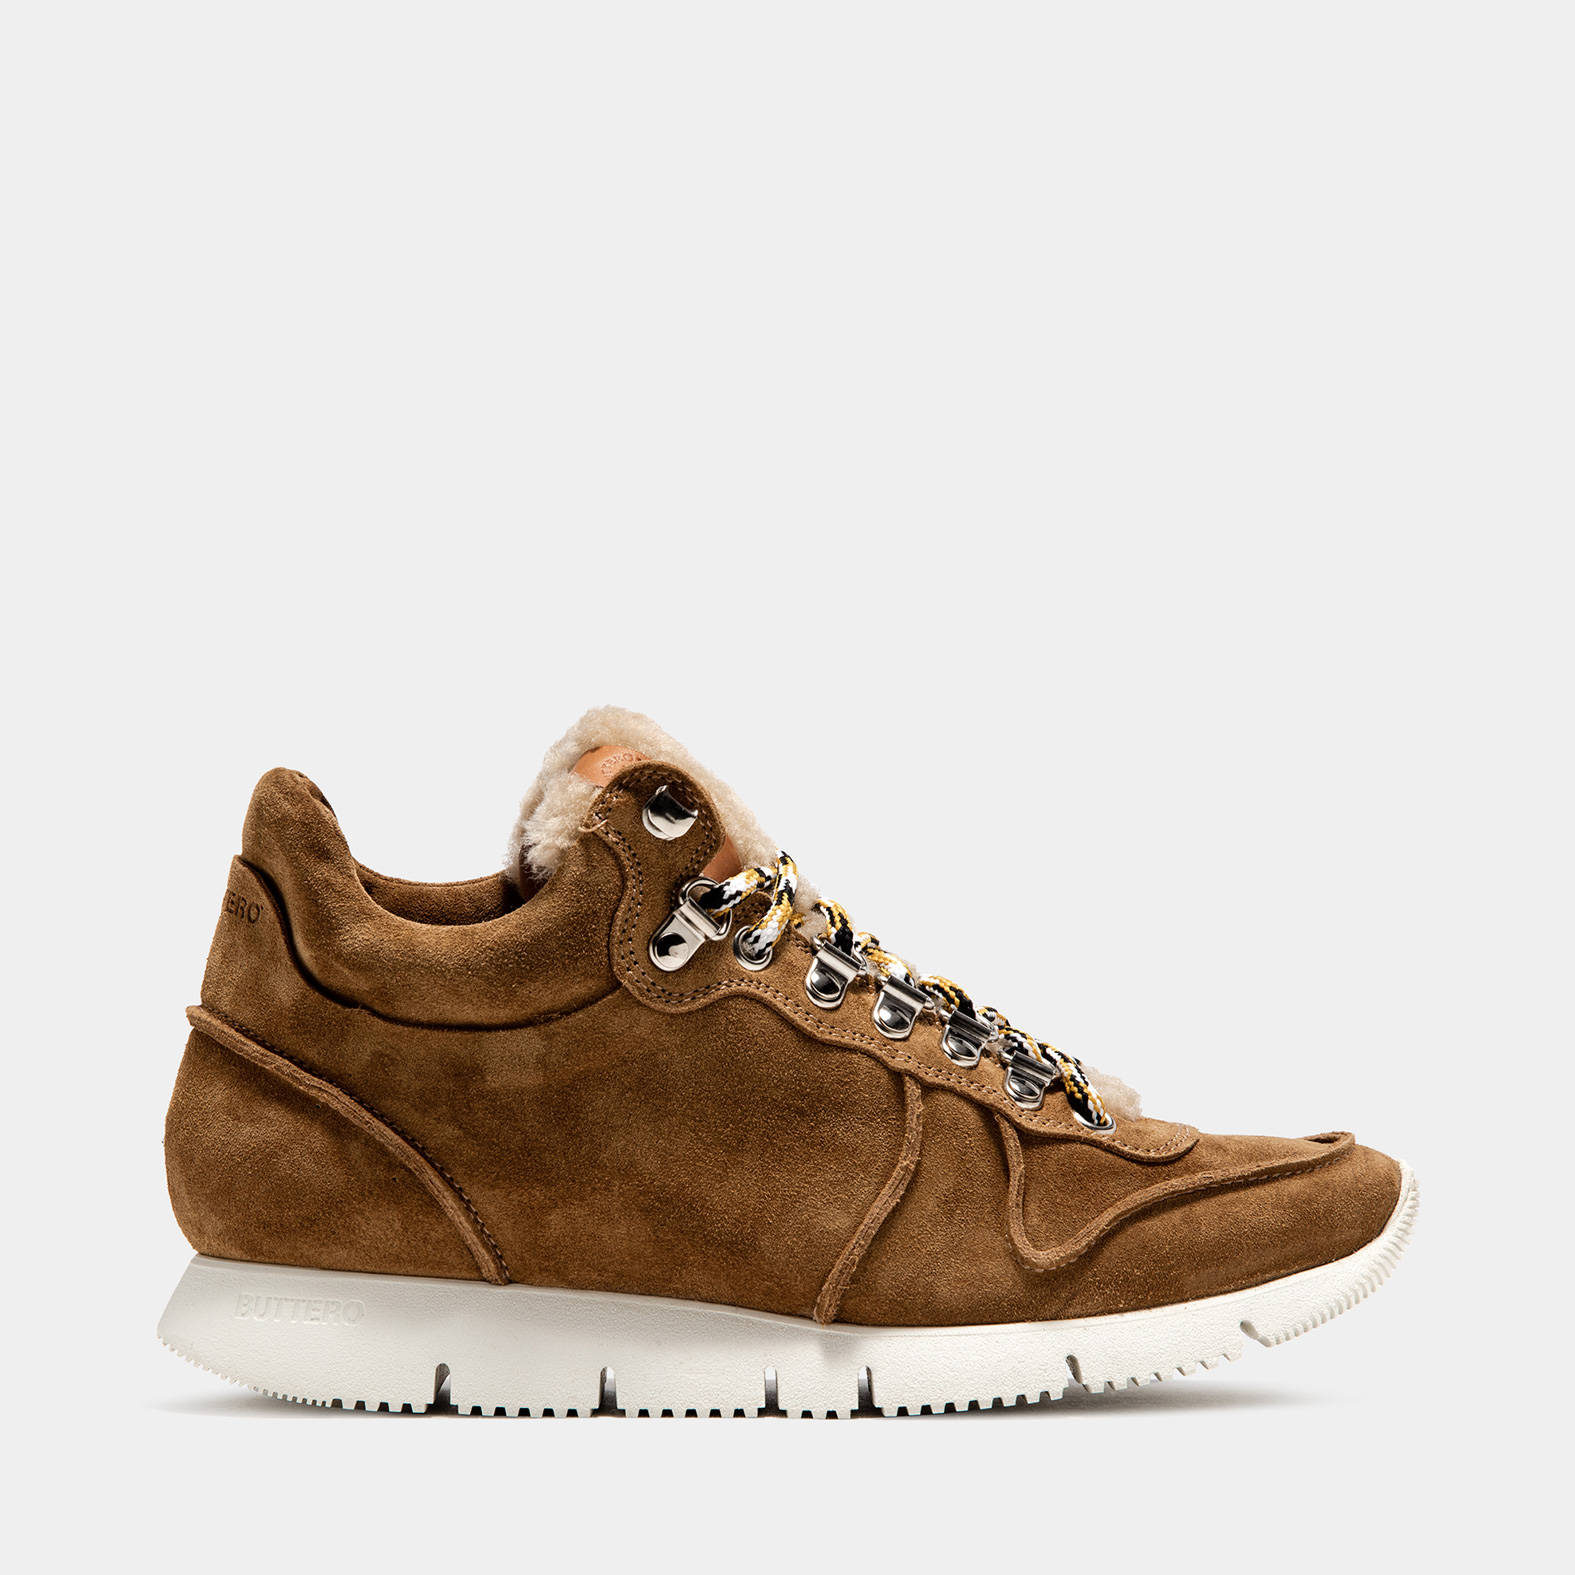 BUTTERO: CARRERA SNEAKERS IN COPPER SUEDE